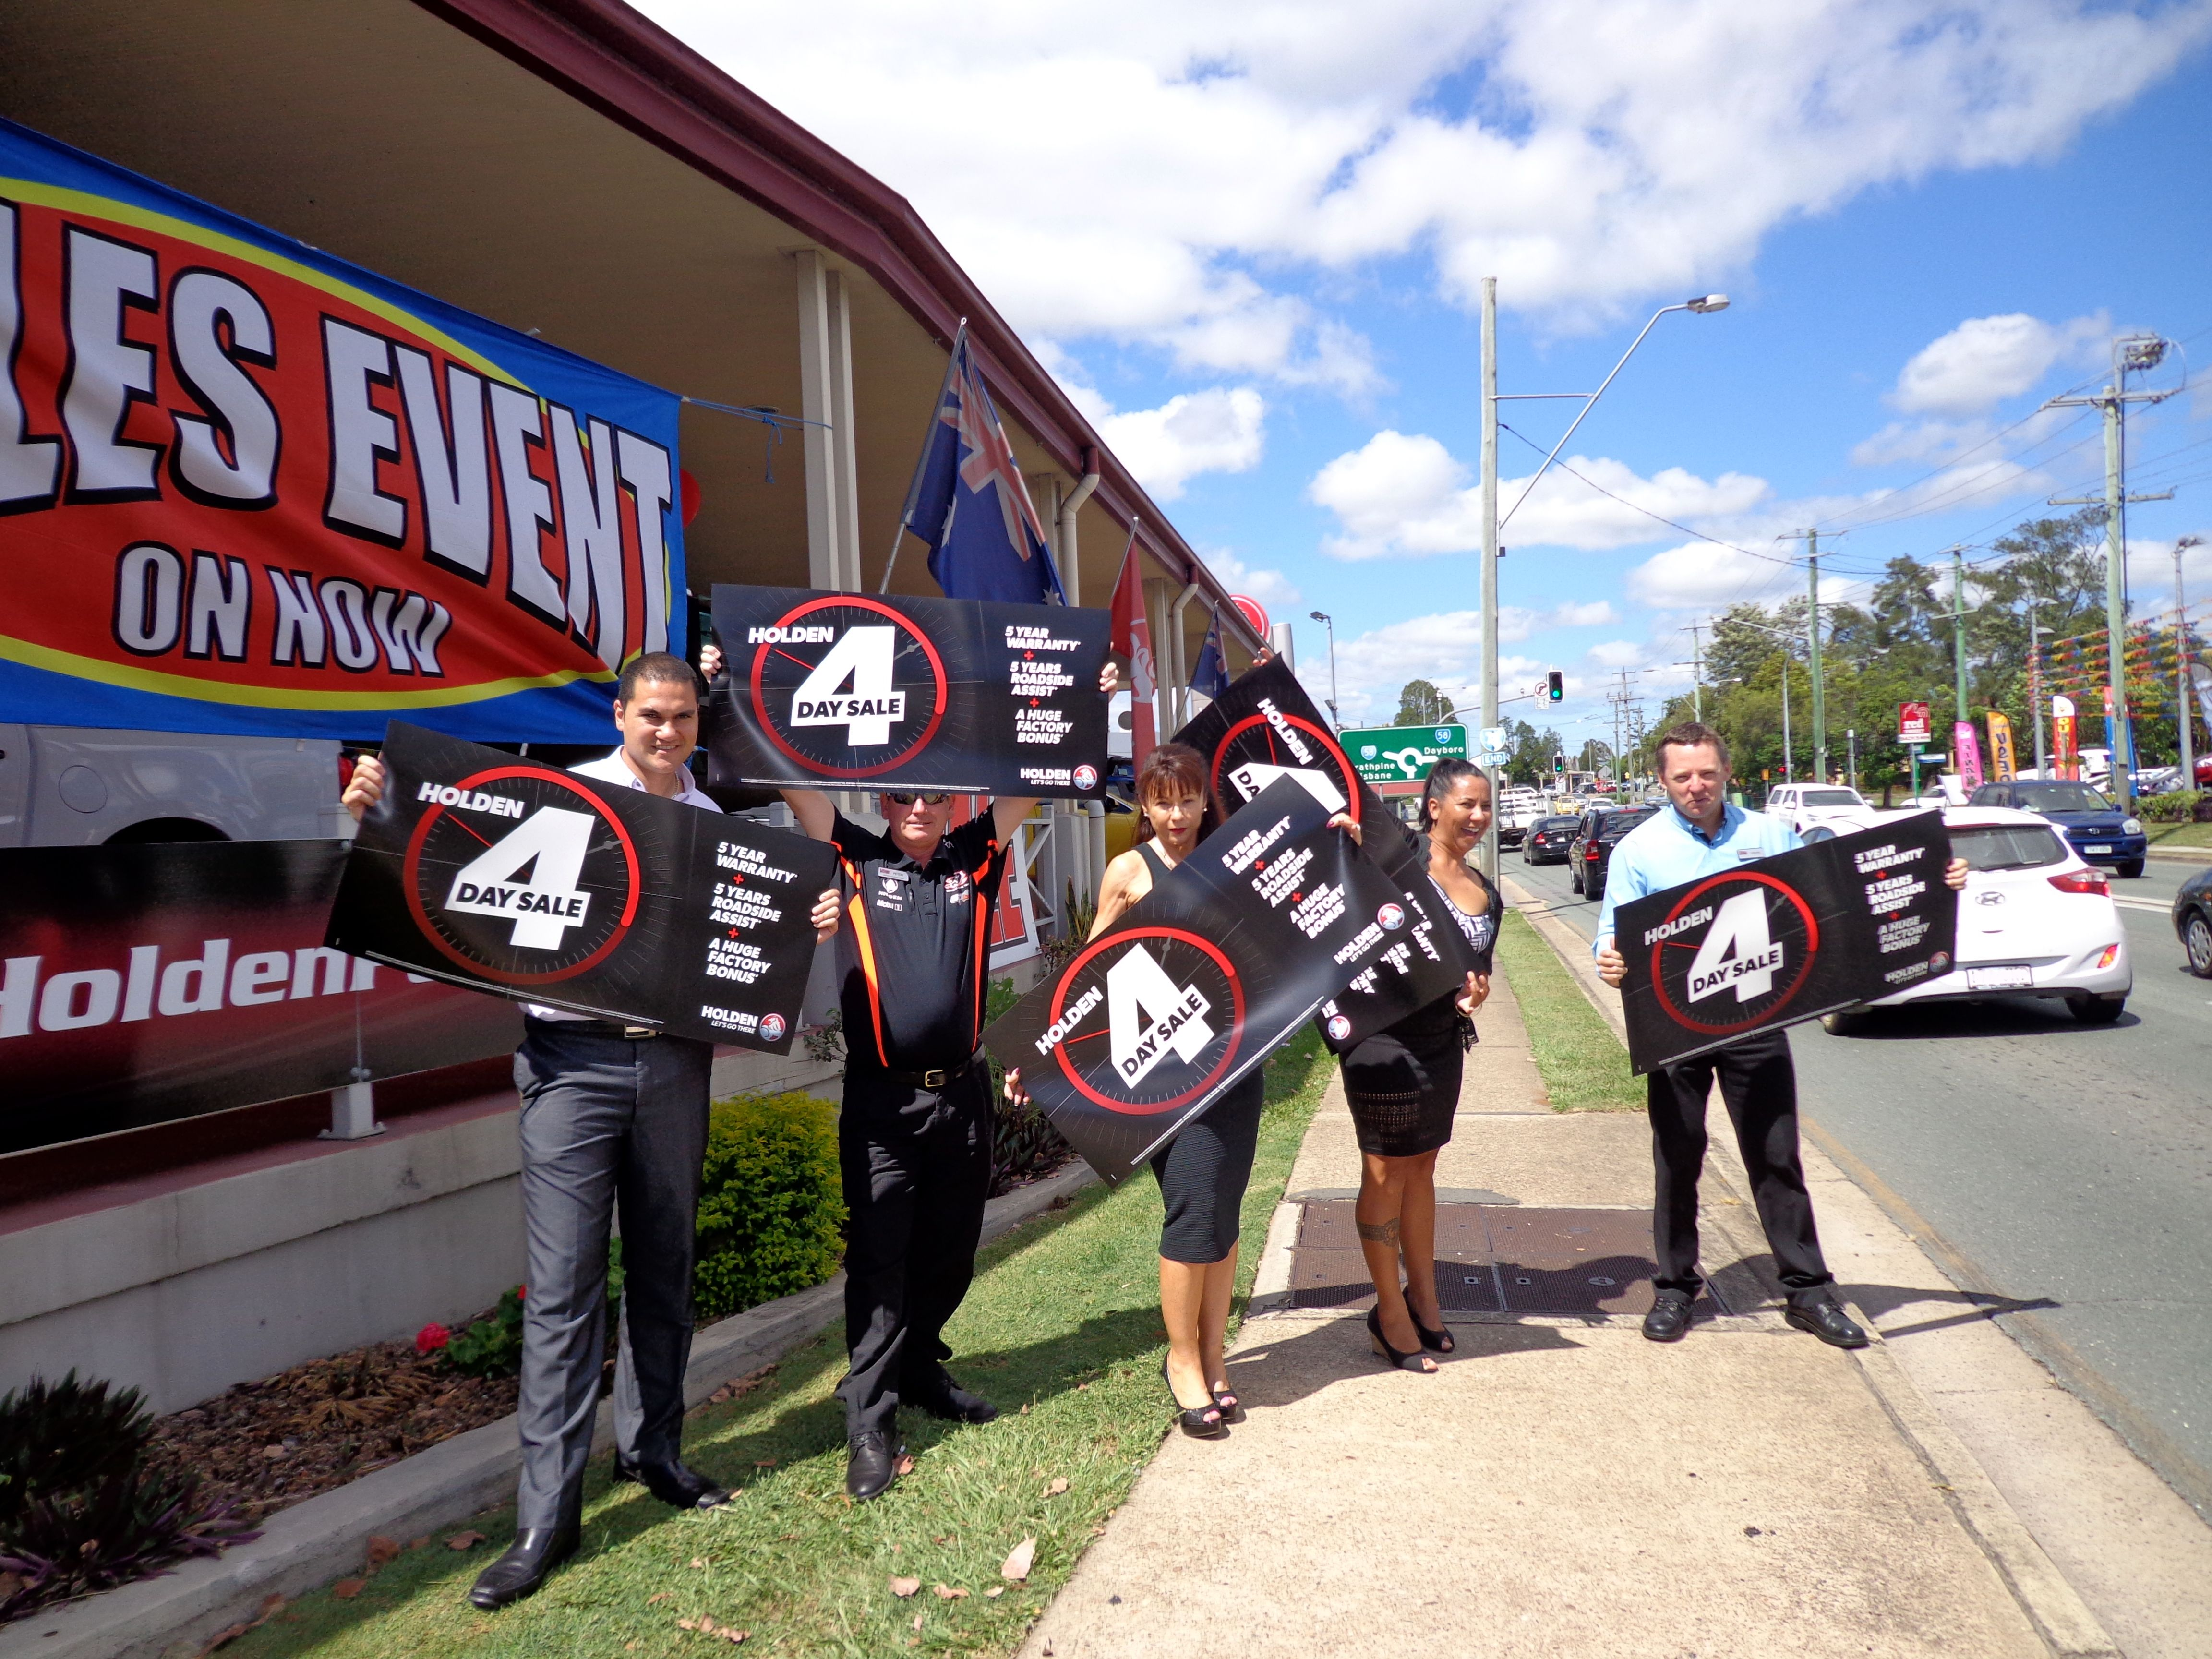 The Village Motors Holden 4 Day Sale! The team was having